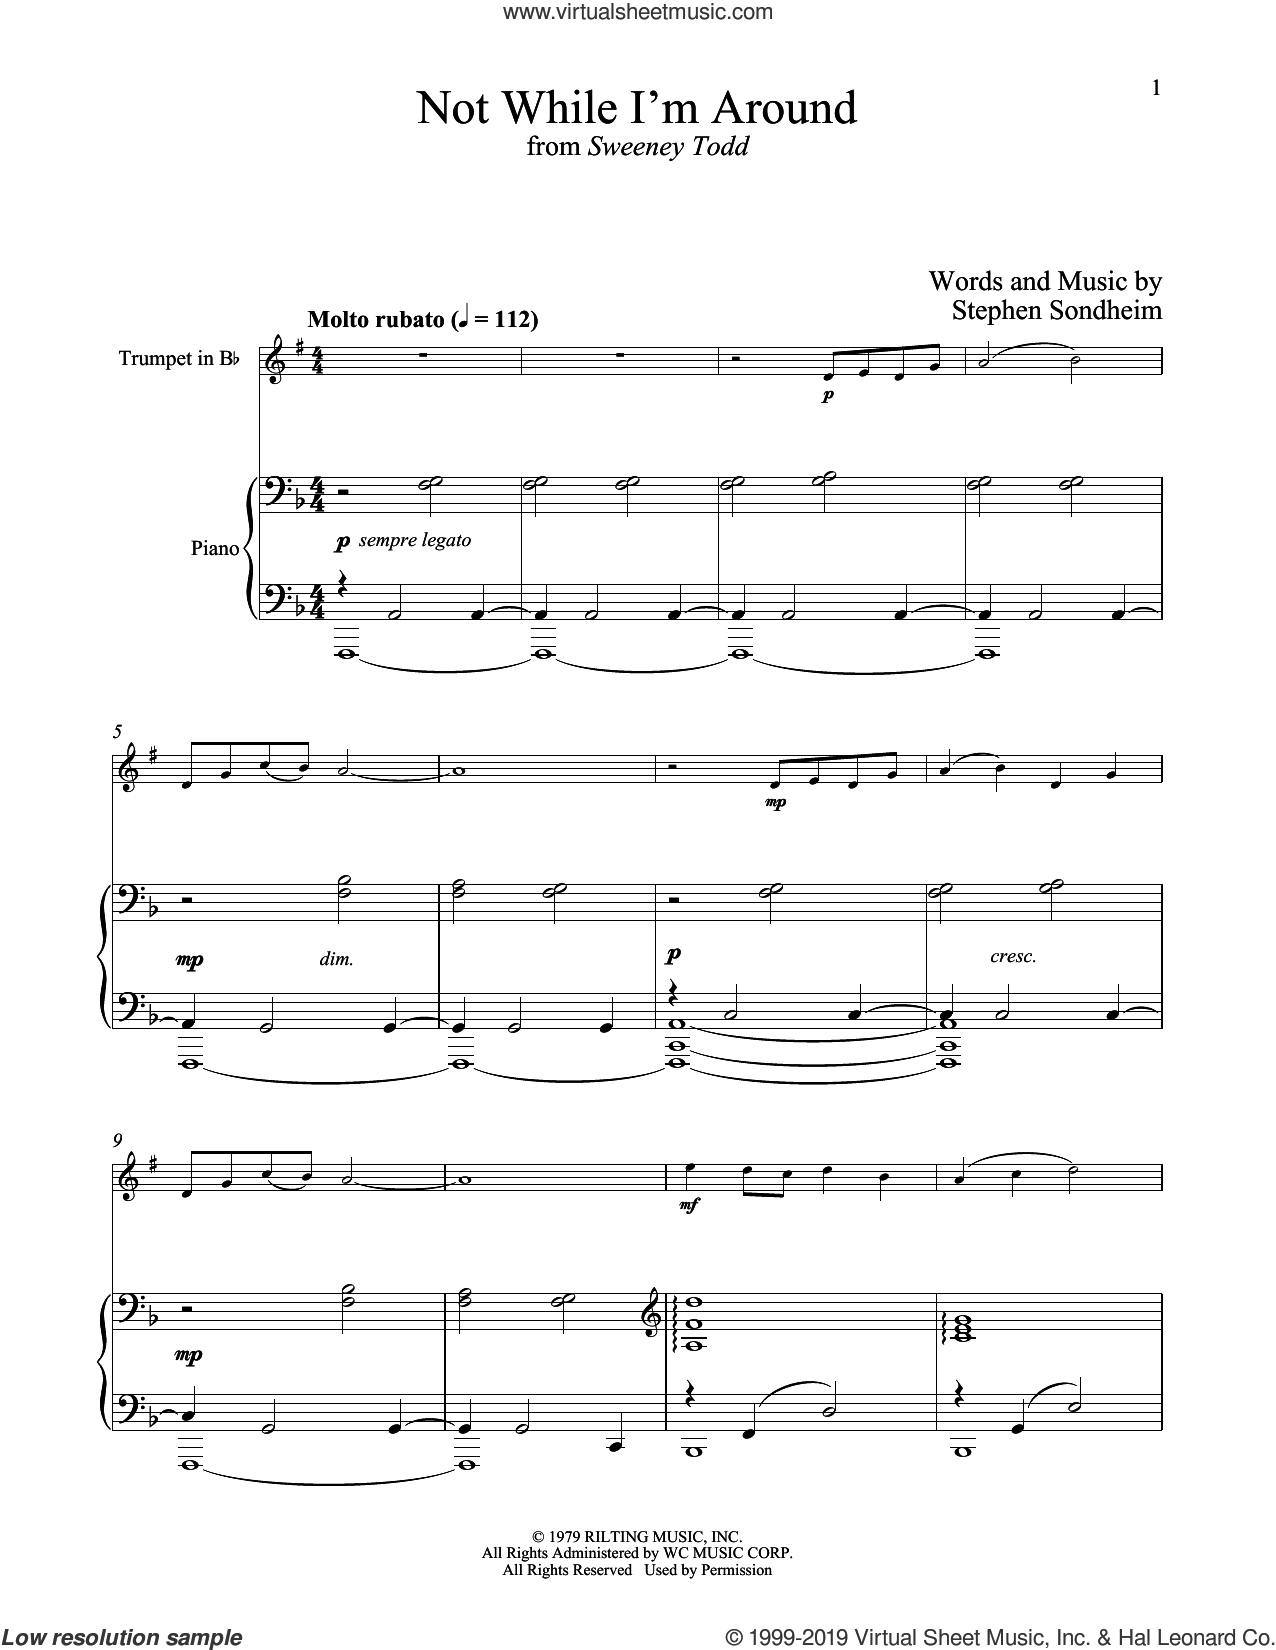 Not While I'm Around (from Sweeney Todd) sheet music for trumpet and piano by Stephen Sondheim, intermediate skill level